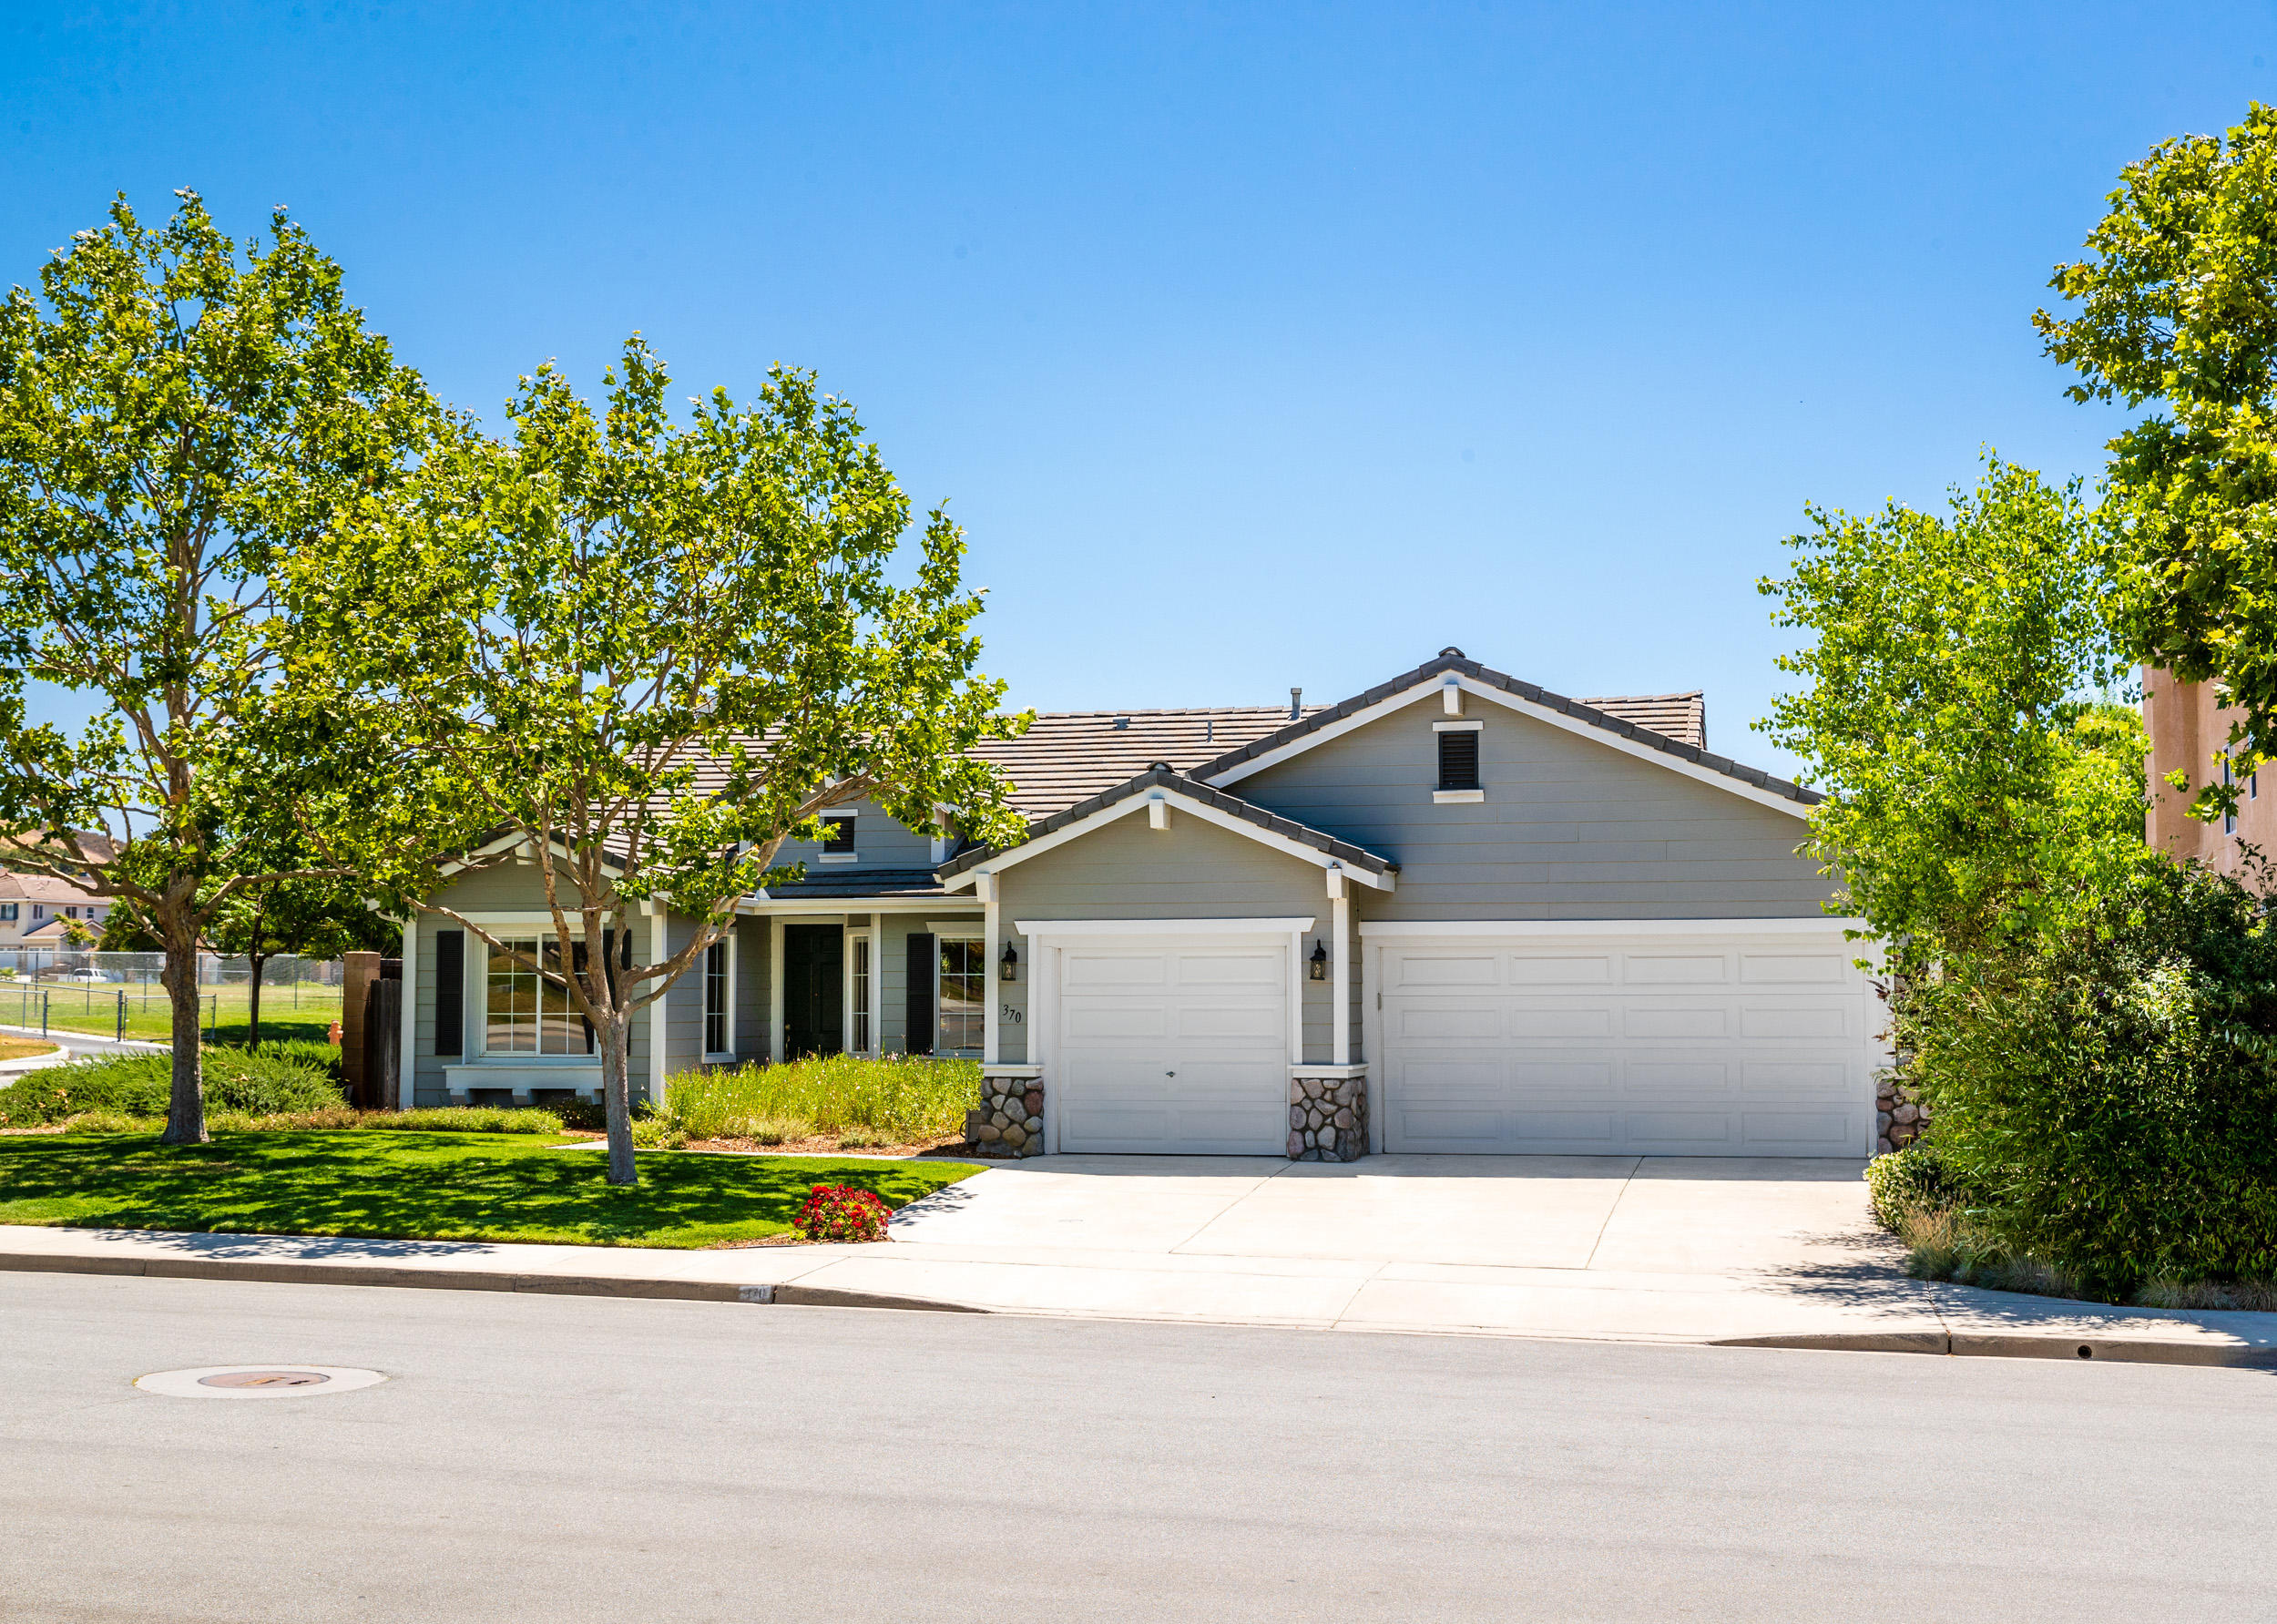 Property photo for 370 Beech Ct Buellton, California 93427 - 18-2400